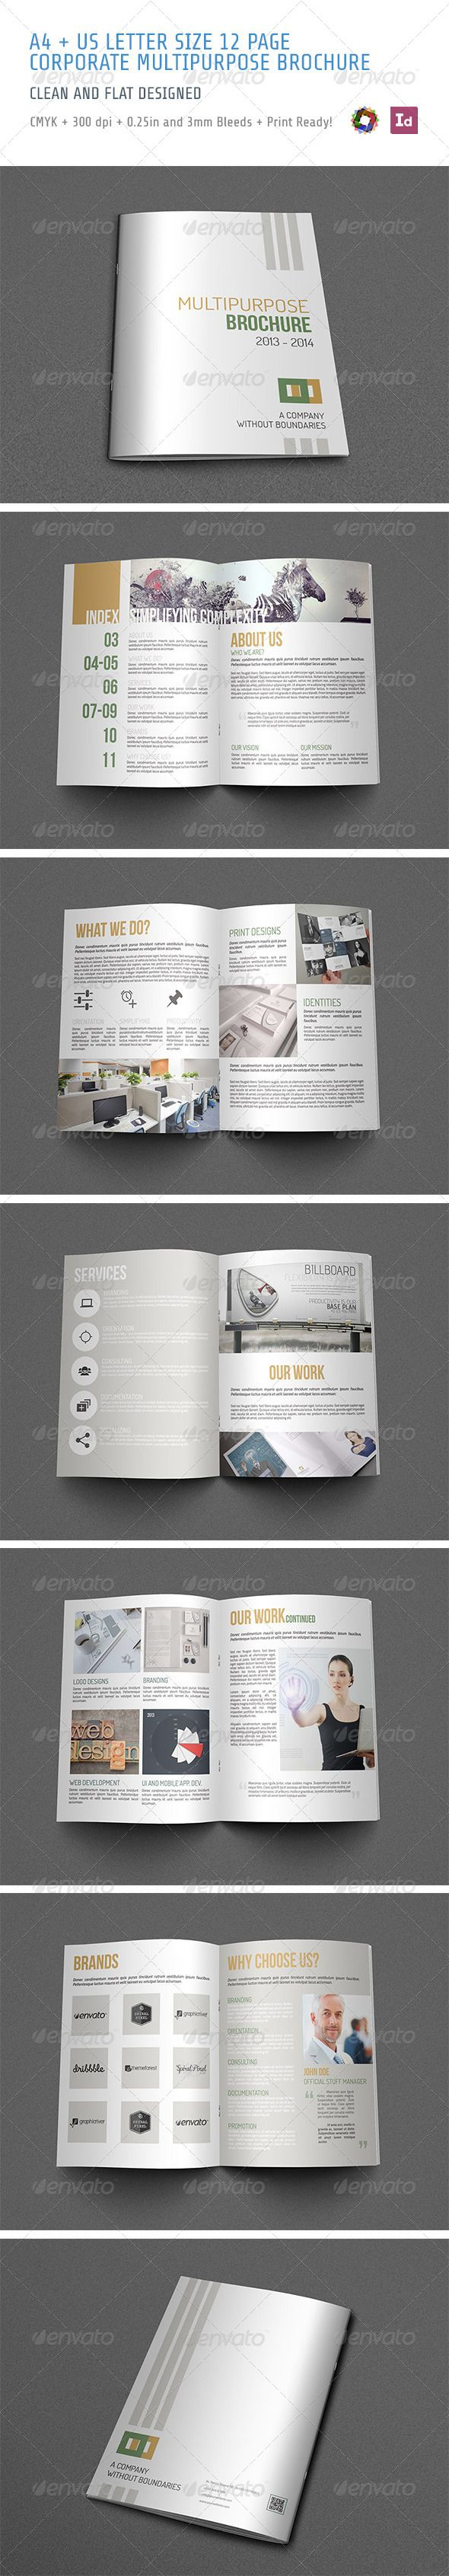 Brochure  #GraphicRiver          brochure  multipurpose  clean and flat designed  a4 and letter size 12 page indesign template  included idml files for indesign cs4 or higher versions  cmyk, 300 dpi, 0.25in bleeds for letter size, 3mm bleeds for a4 size and print ready!    Fonts    Dosis :  .fontsquirrel /fonts/dosis  Bebas Neue :  .fontsquirrel /fonts/bebas-neue  Titillium :  .fontsquirrel /fonts/titillium    Photos in preview image and in screenshots are only for…